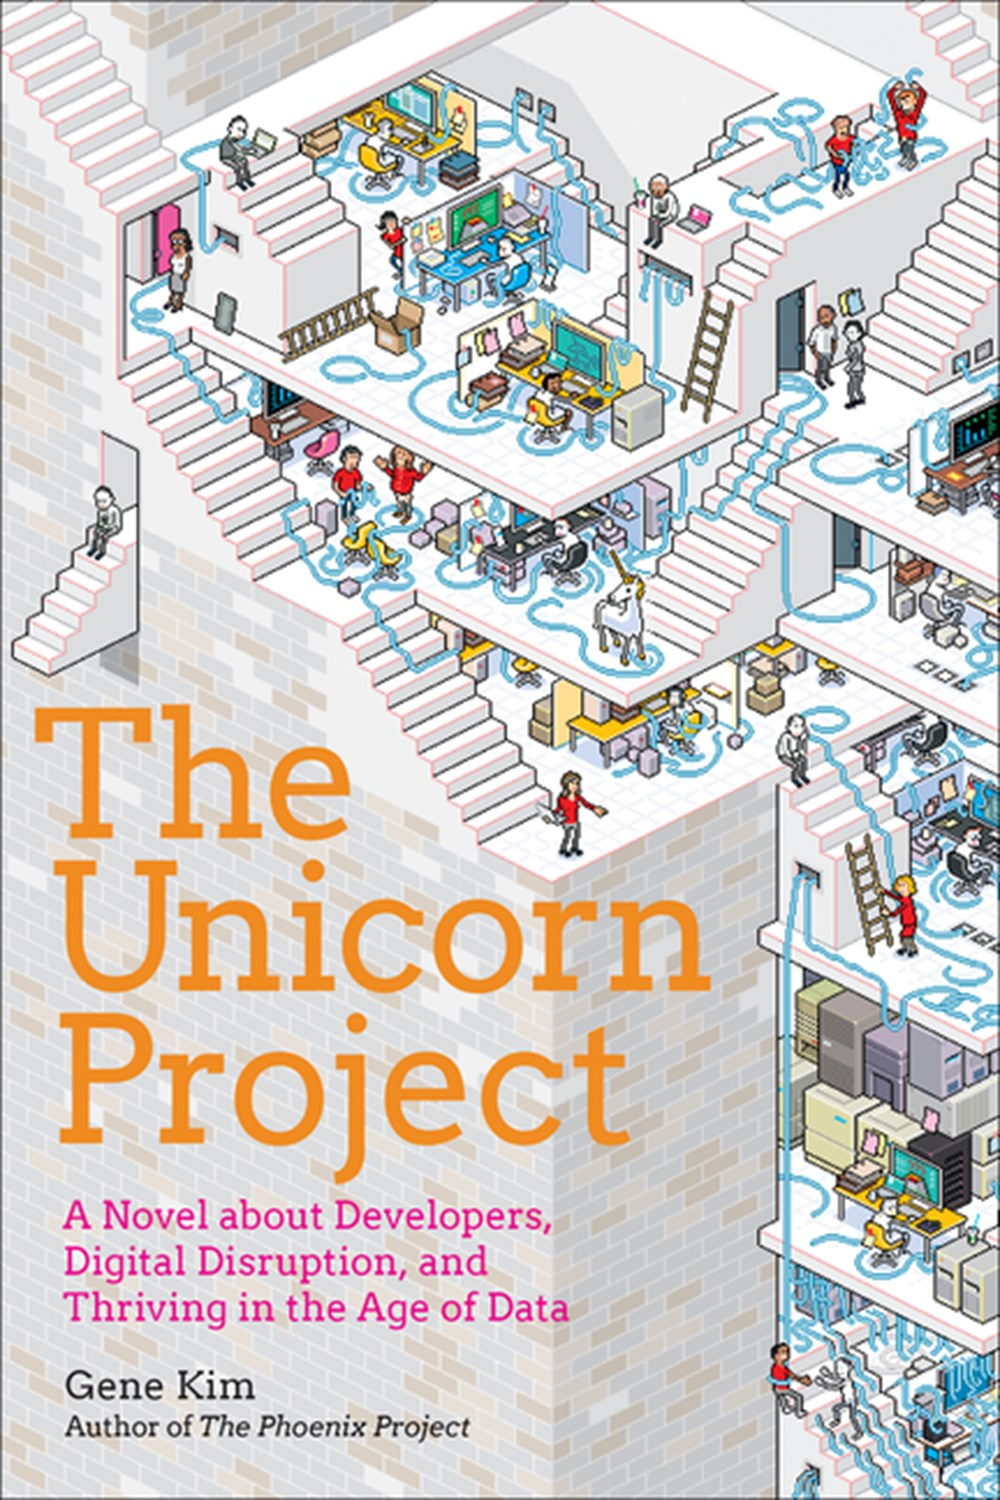 Unicorn Project A Novel about Developers, Digital Disruption, and Thriving in the Age of Data